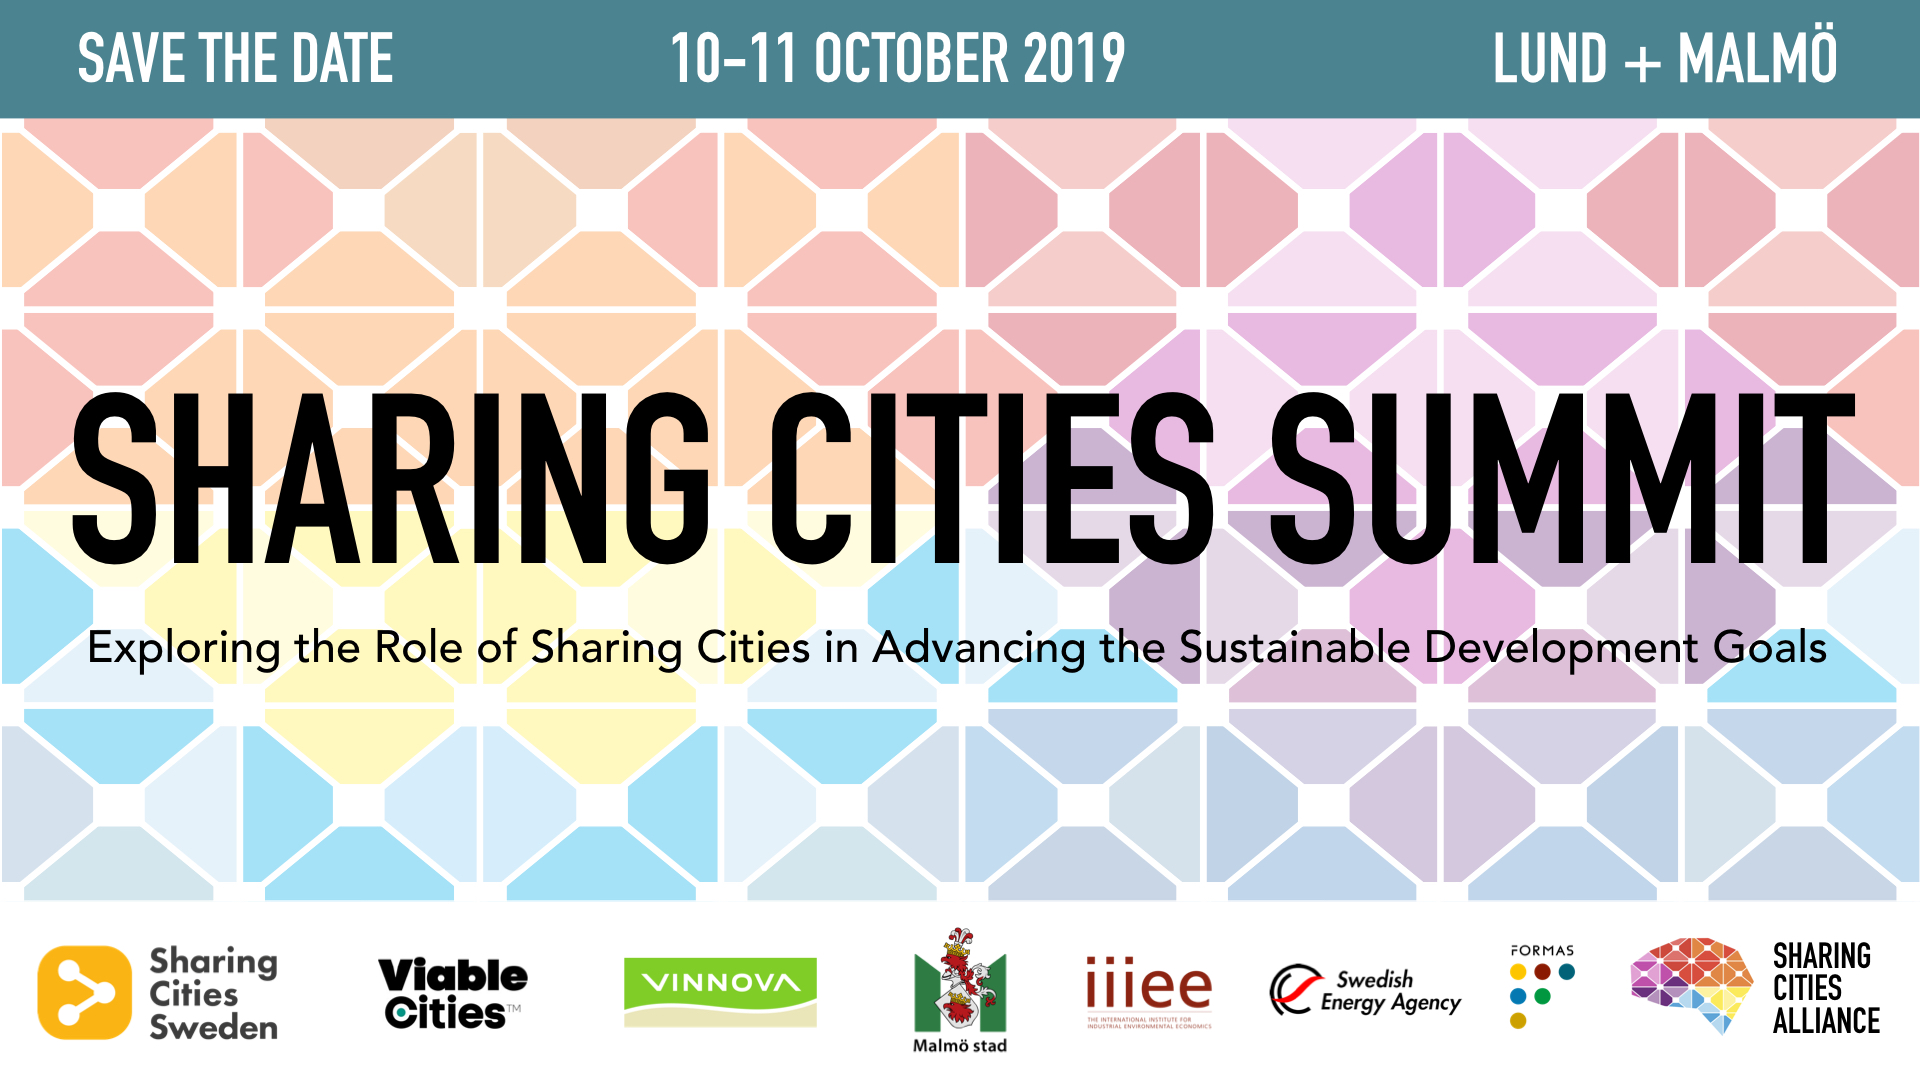 Sharing Cities Alliance _ Sharing Cities Sweden _ Sharing Cities Summit _ save the date _ 10 11 October 2019.jpeg